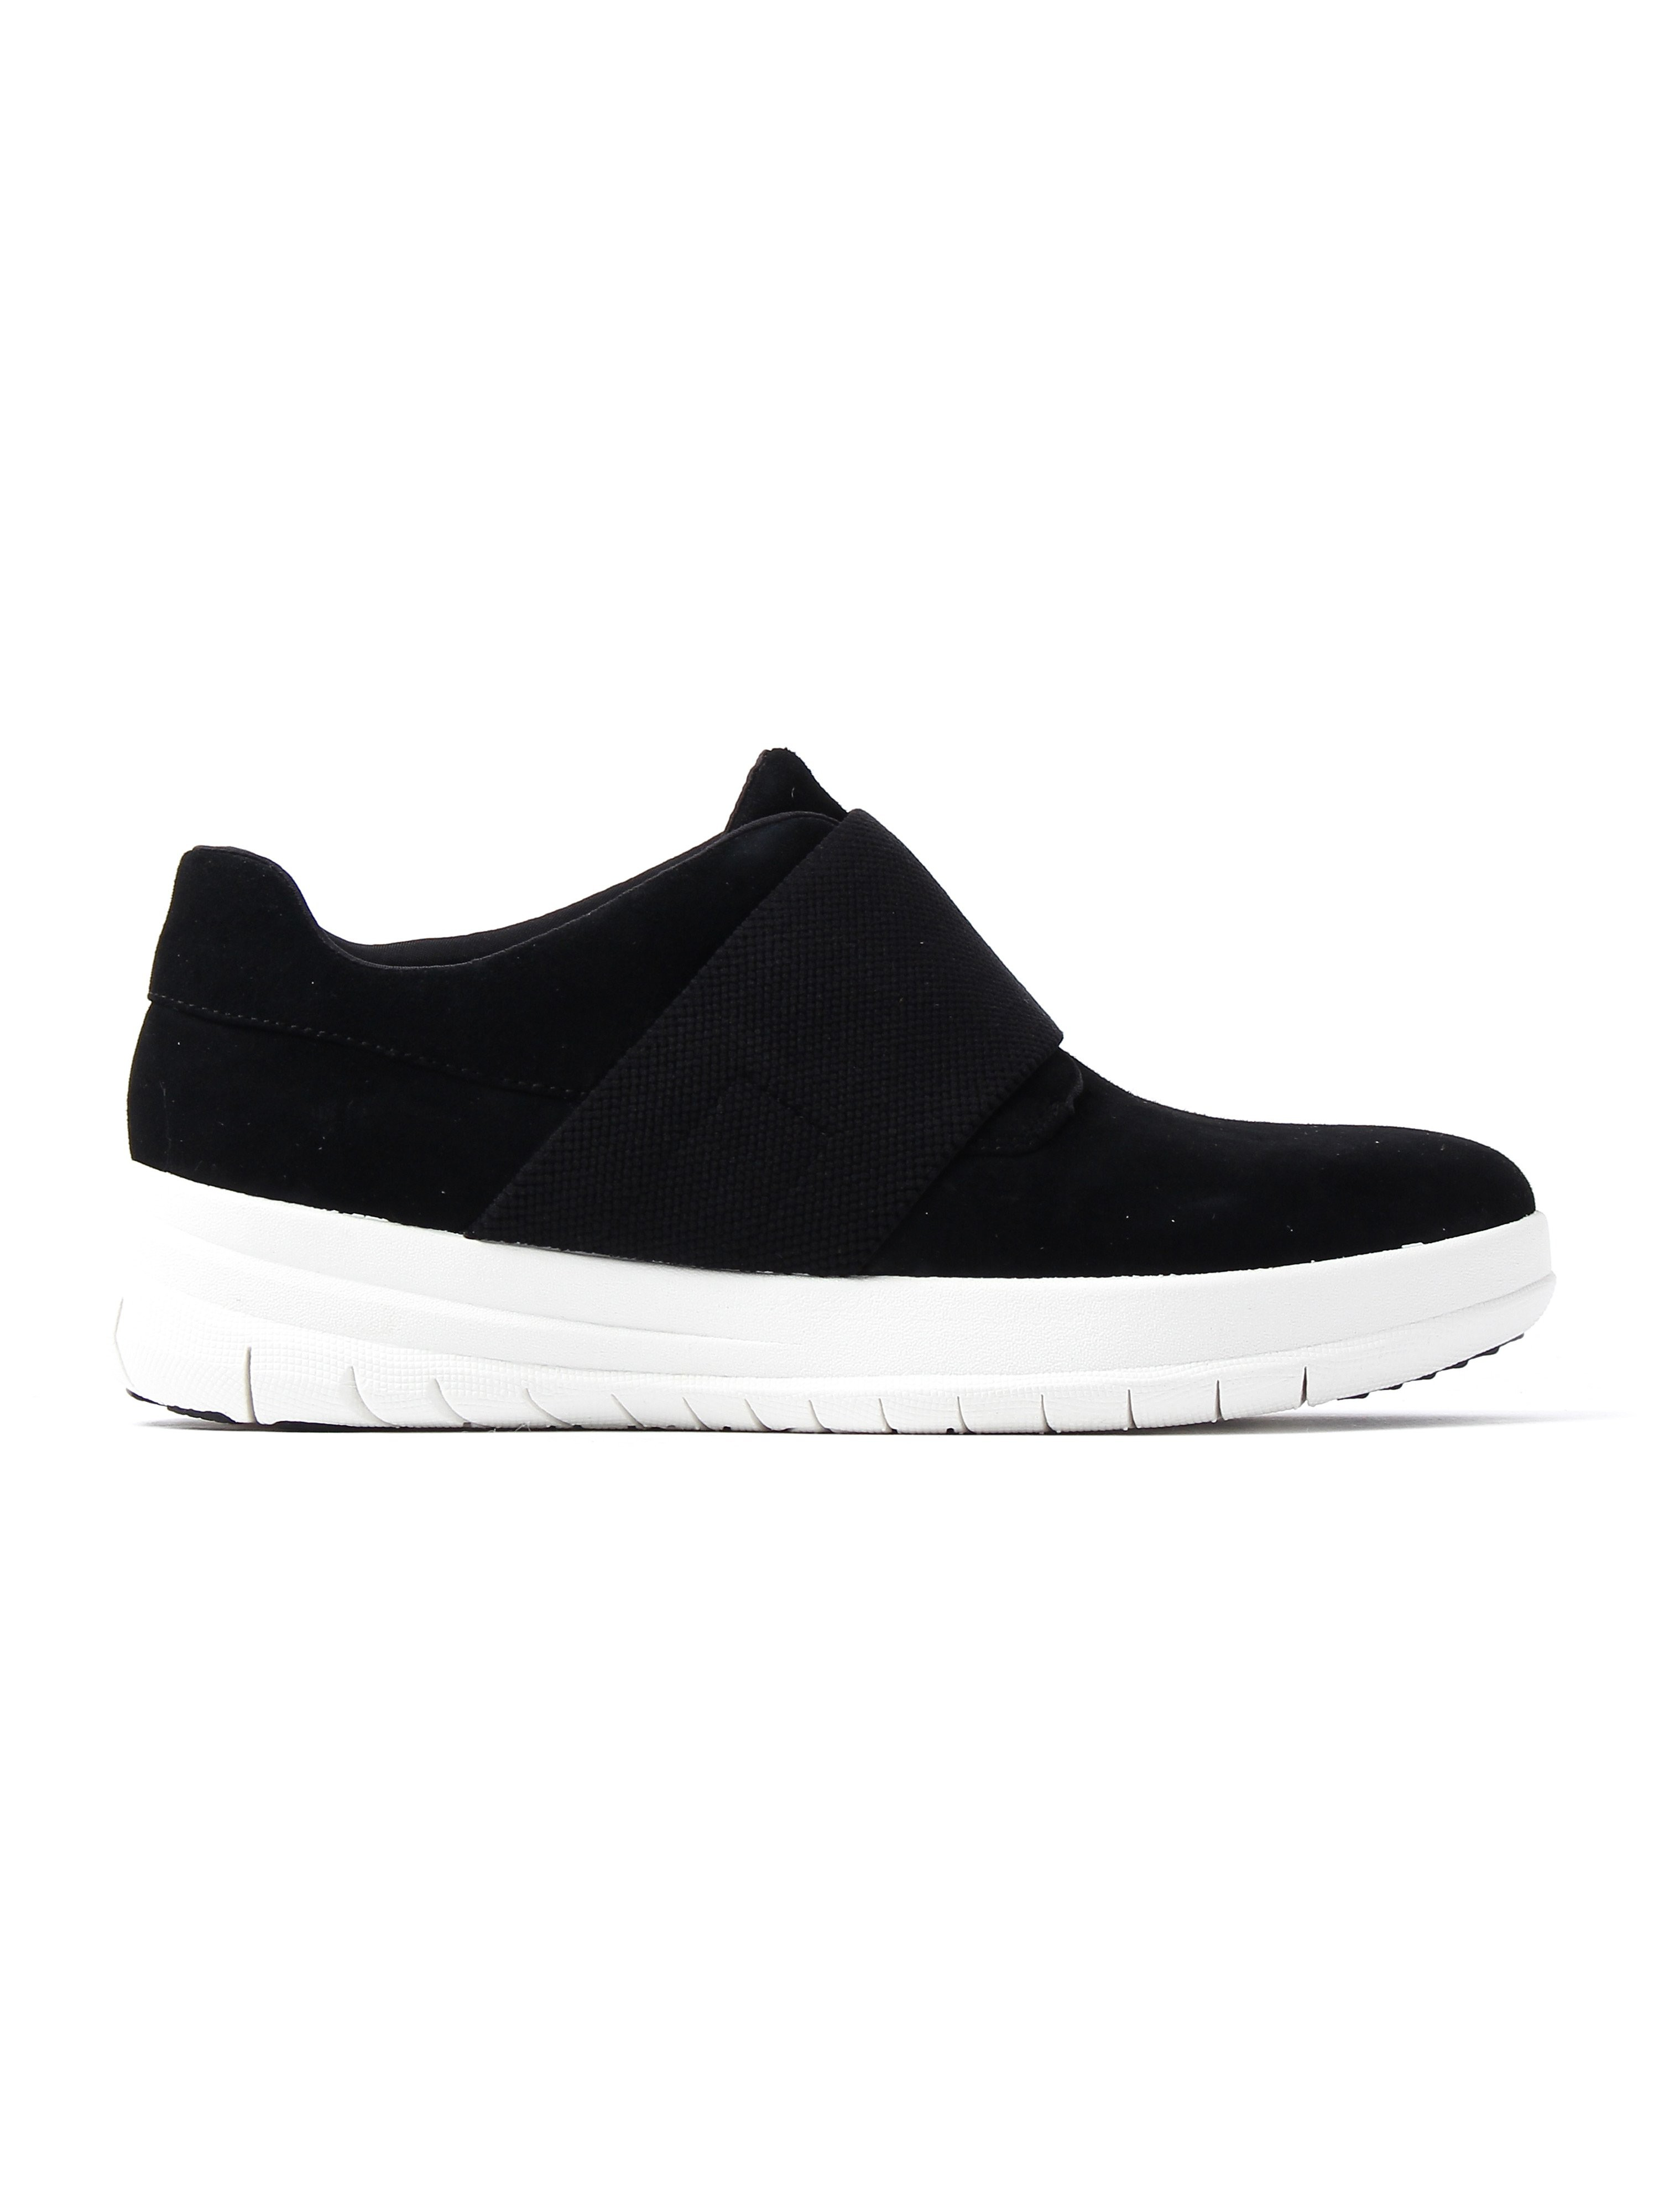 FitFlop Women's Sporty-Pop Slip-On Trainers - Black Suede